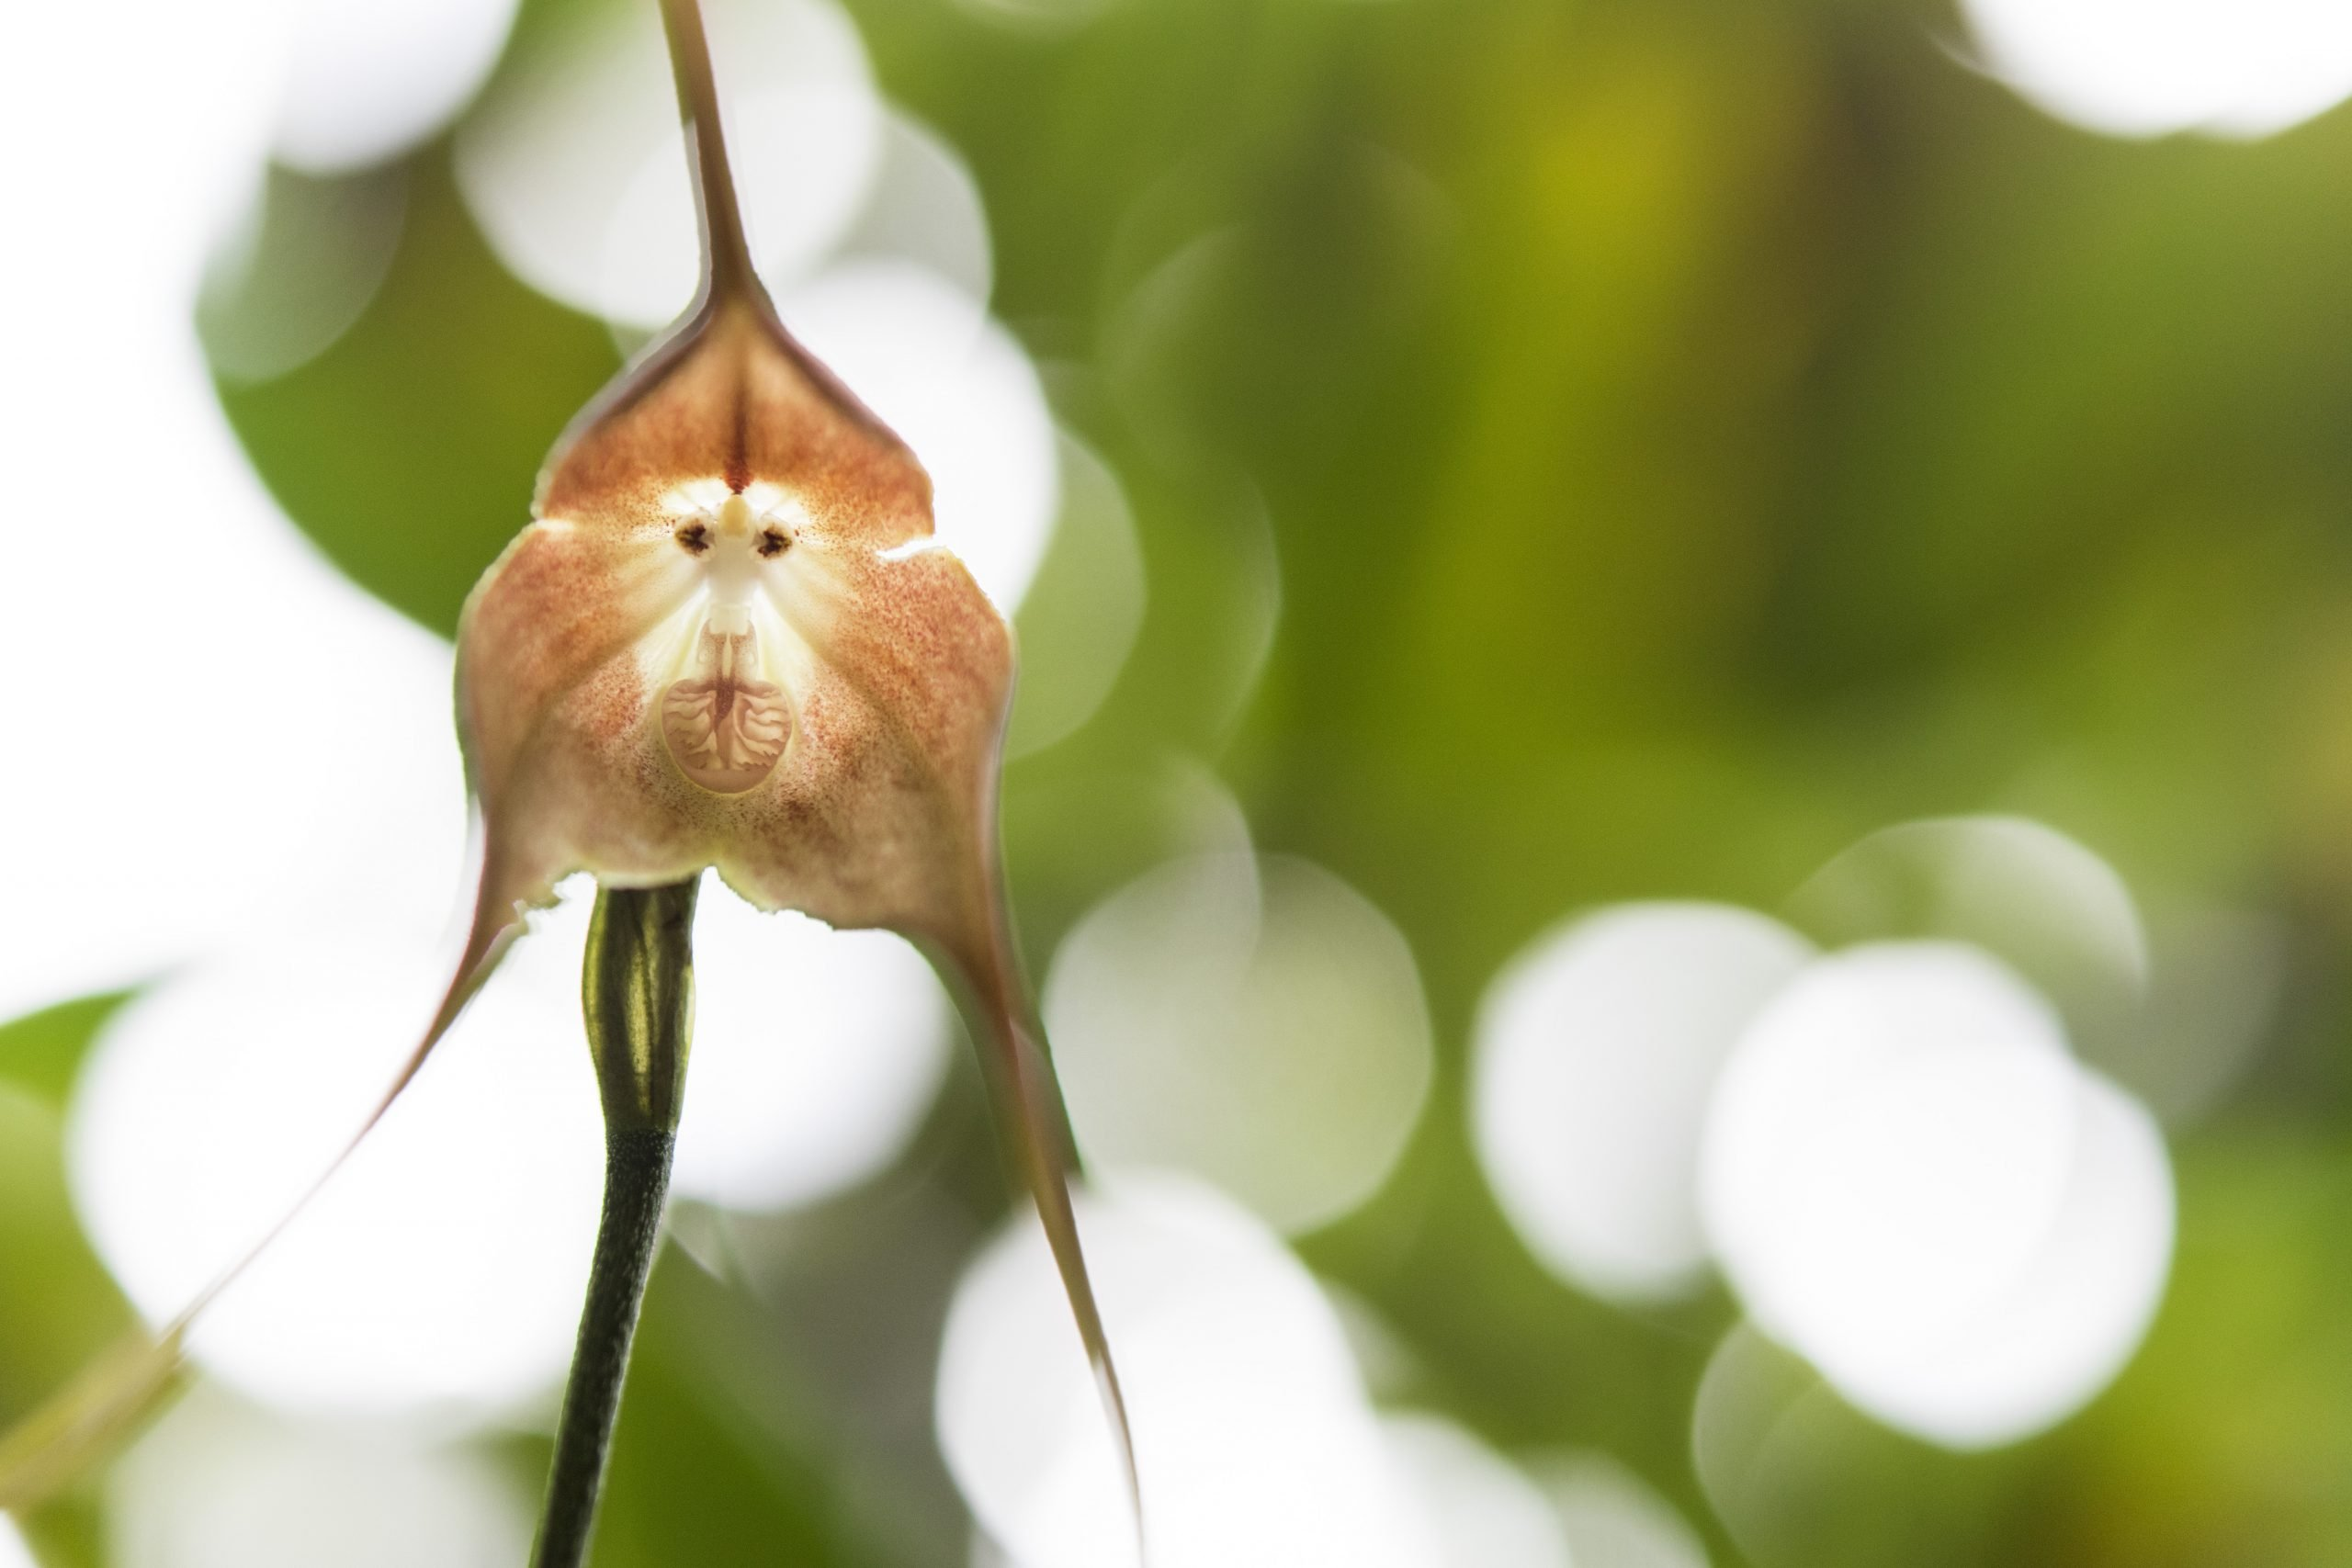 close up of a monkey face orchid plant